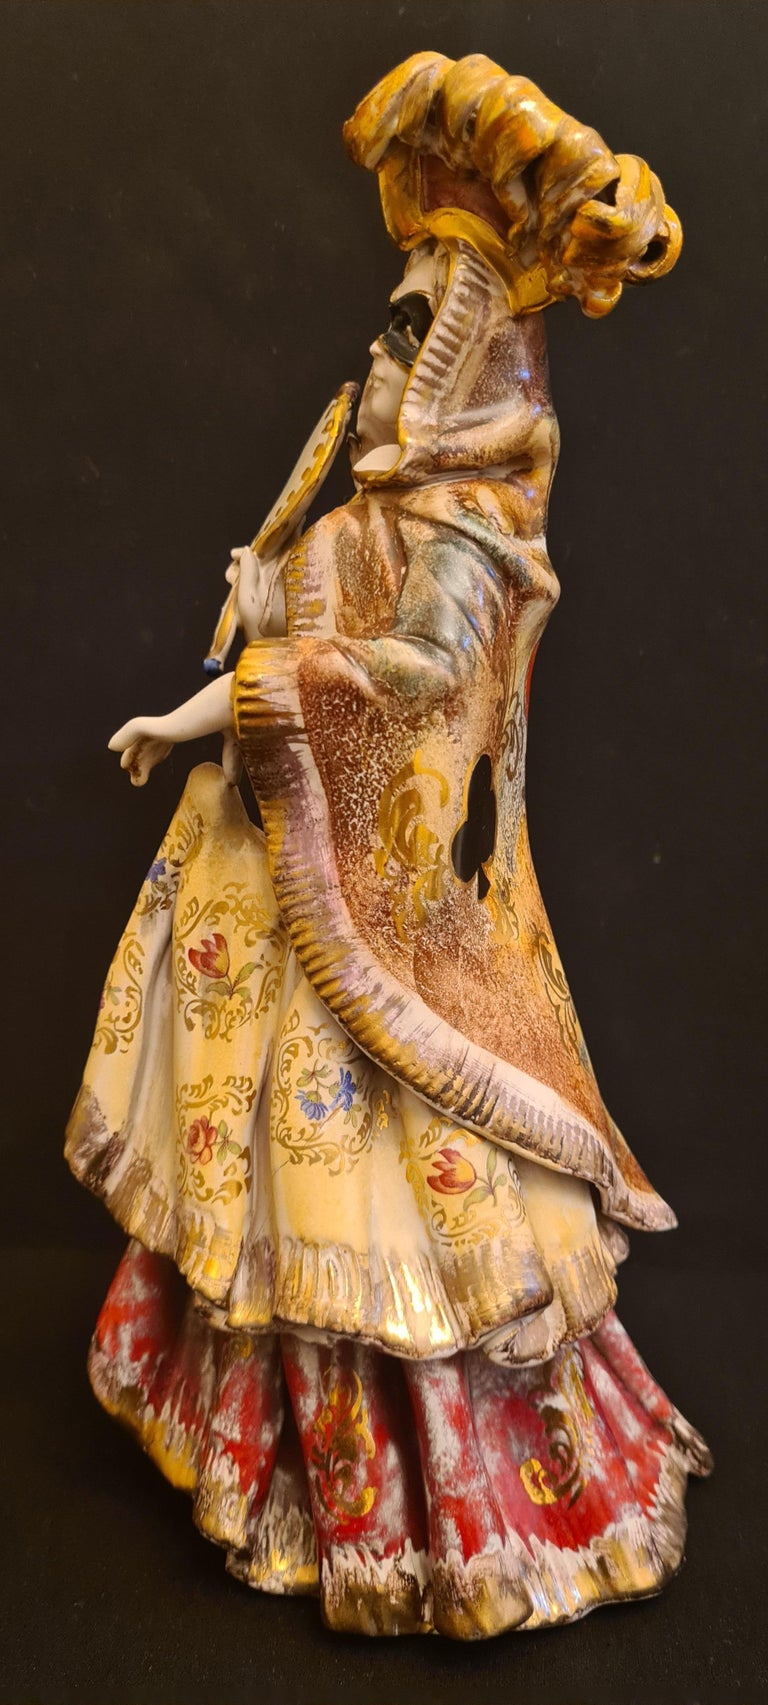 Vitange Italian Ceramic Sculptures Signed by Paolo Marioni For Sale 6